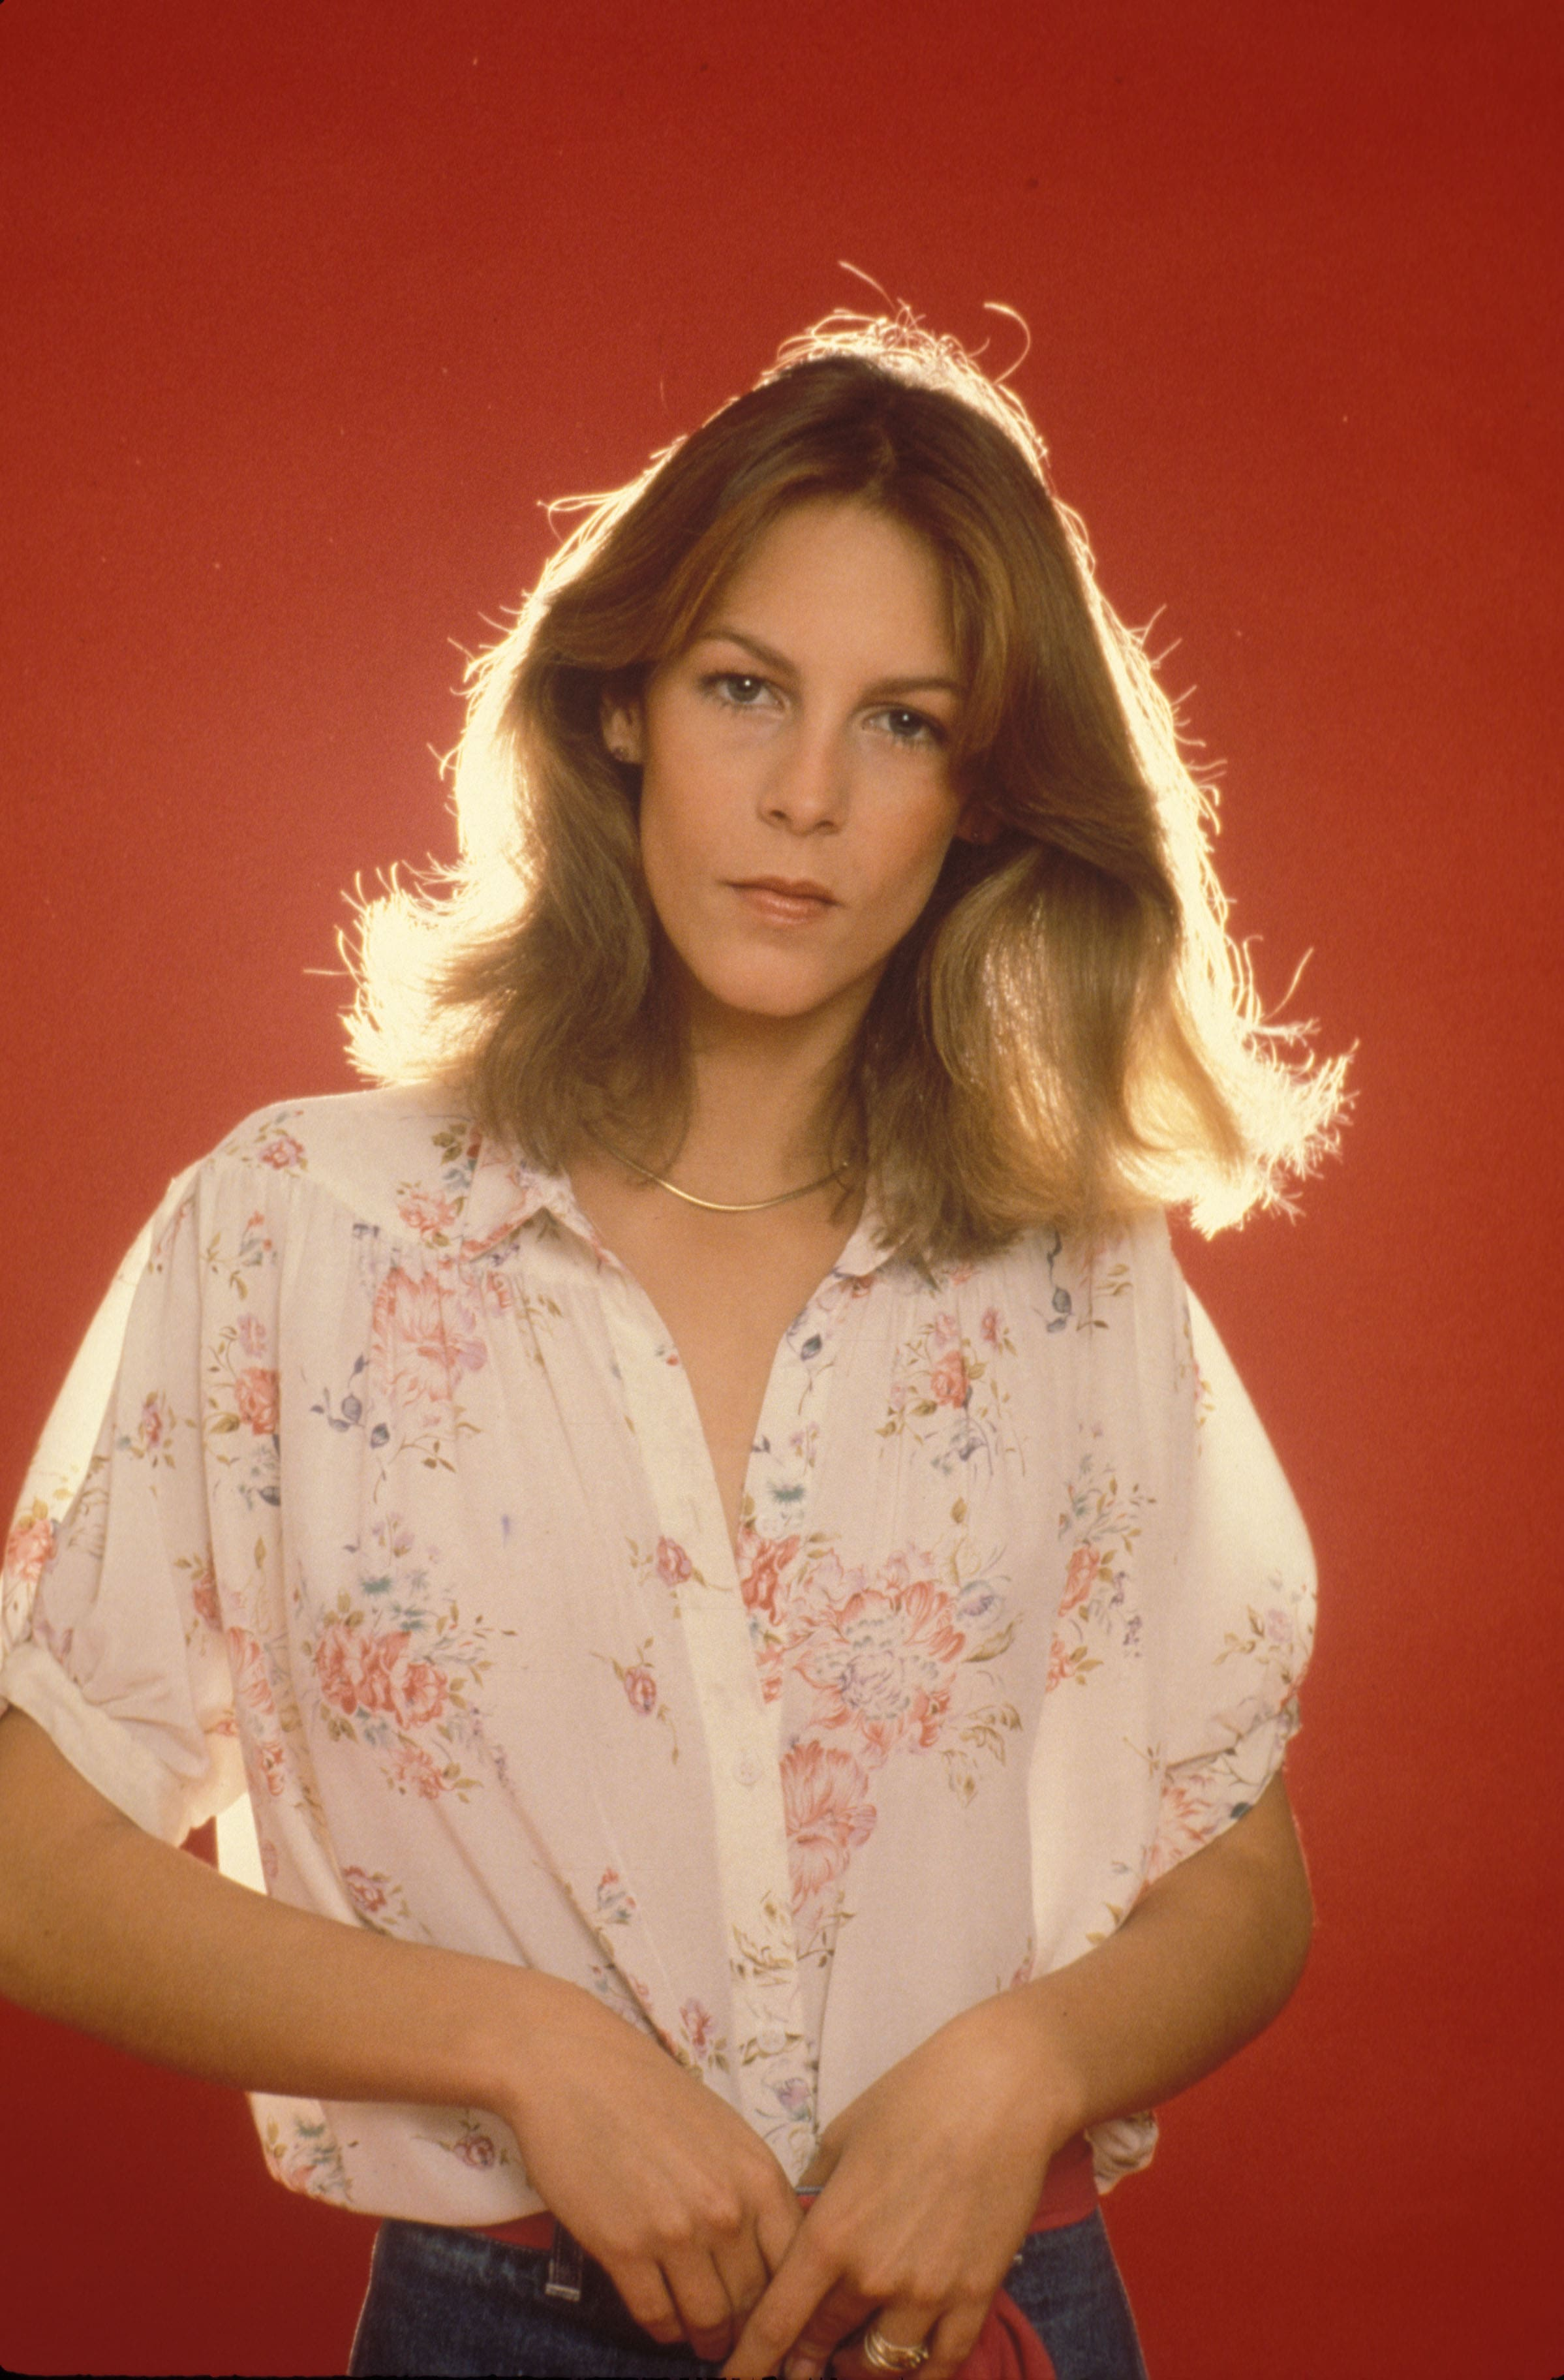 61 Hot Pictures Of Jamie Lee Curtis - The Sexy Halloween Queen